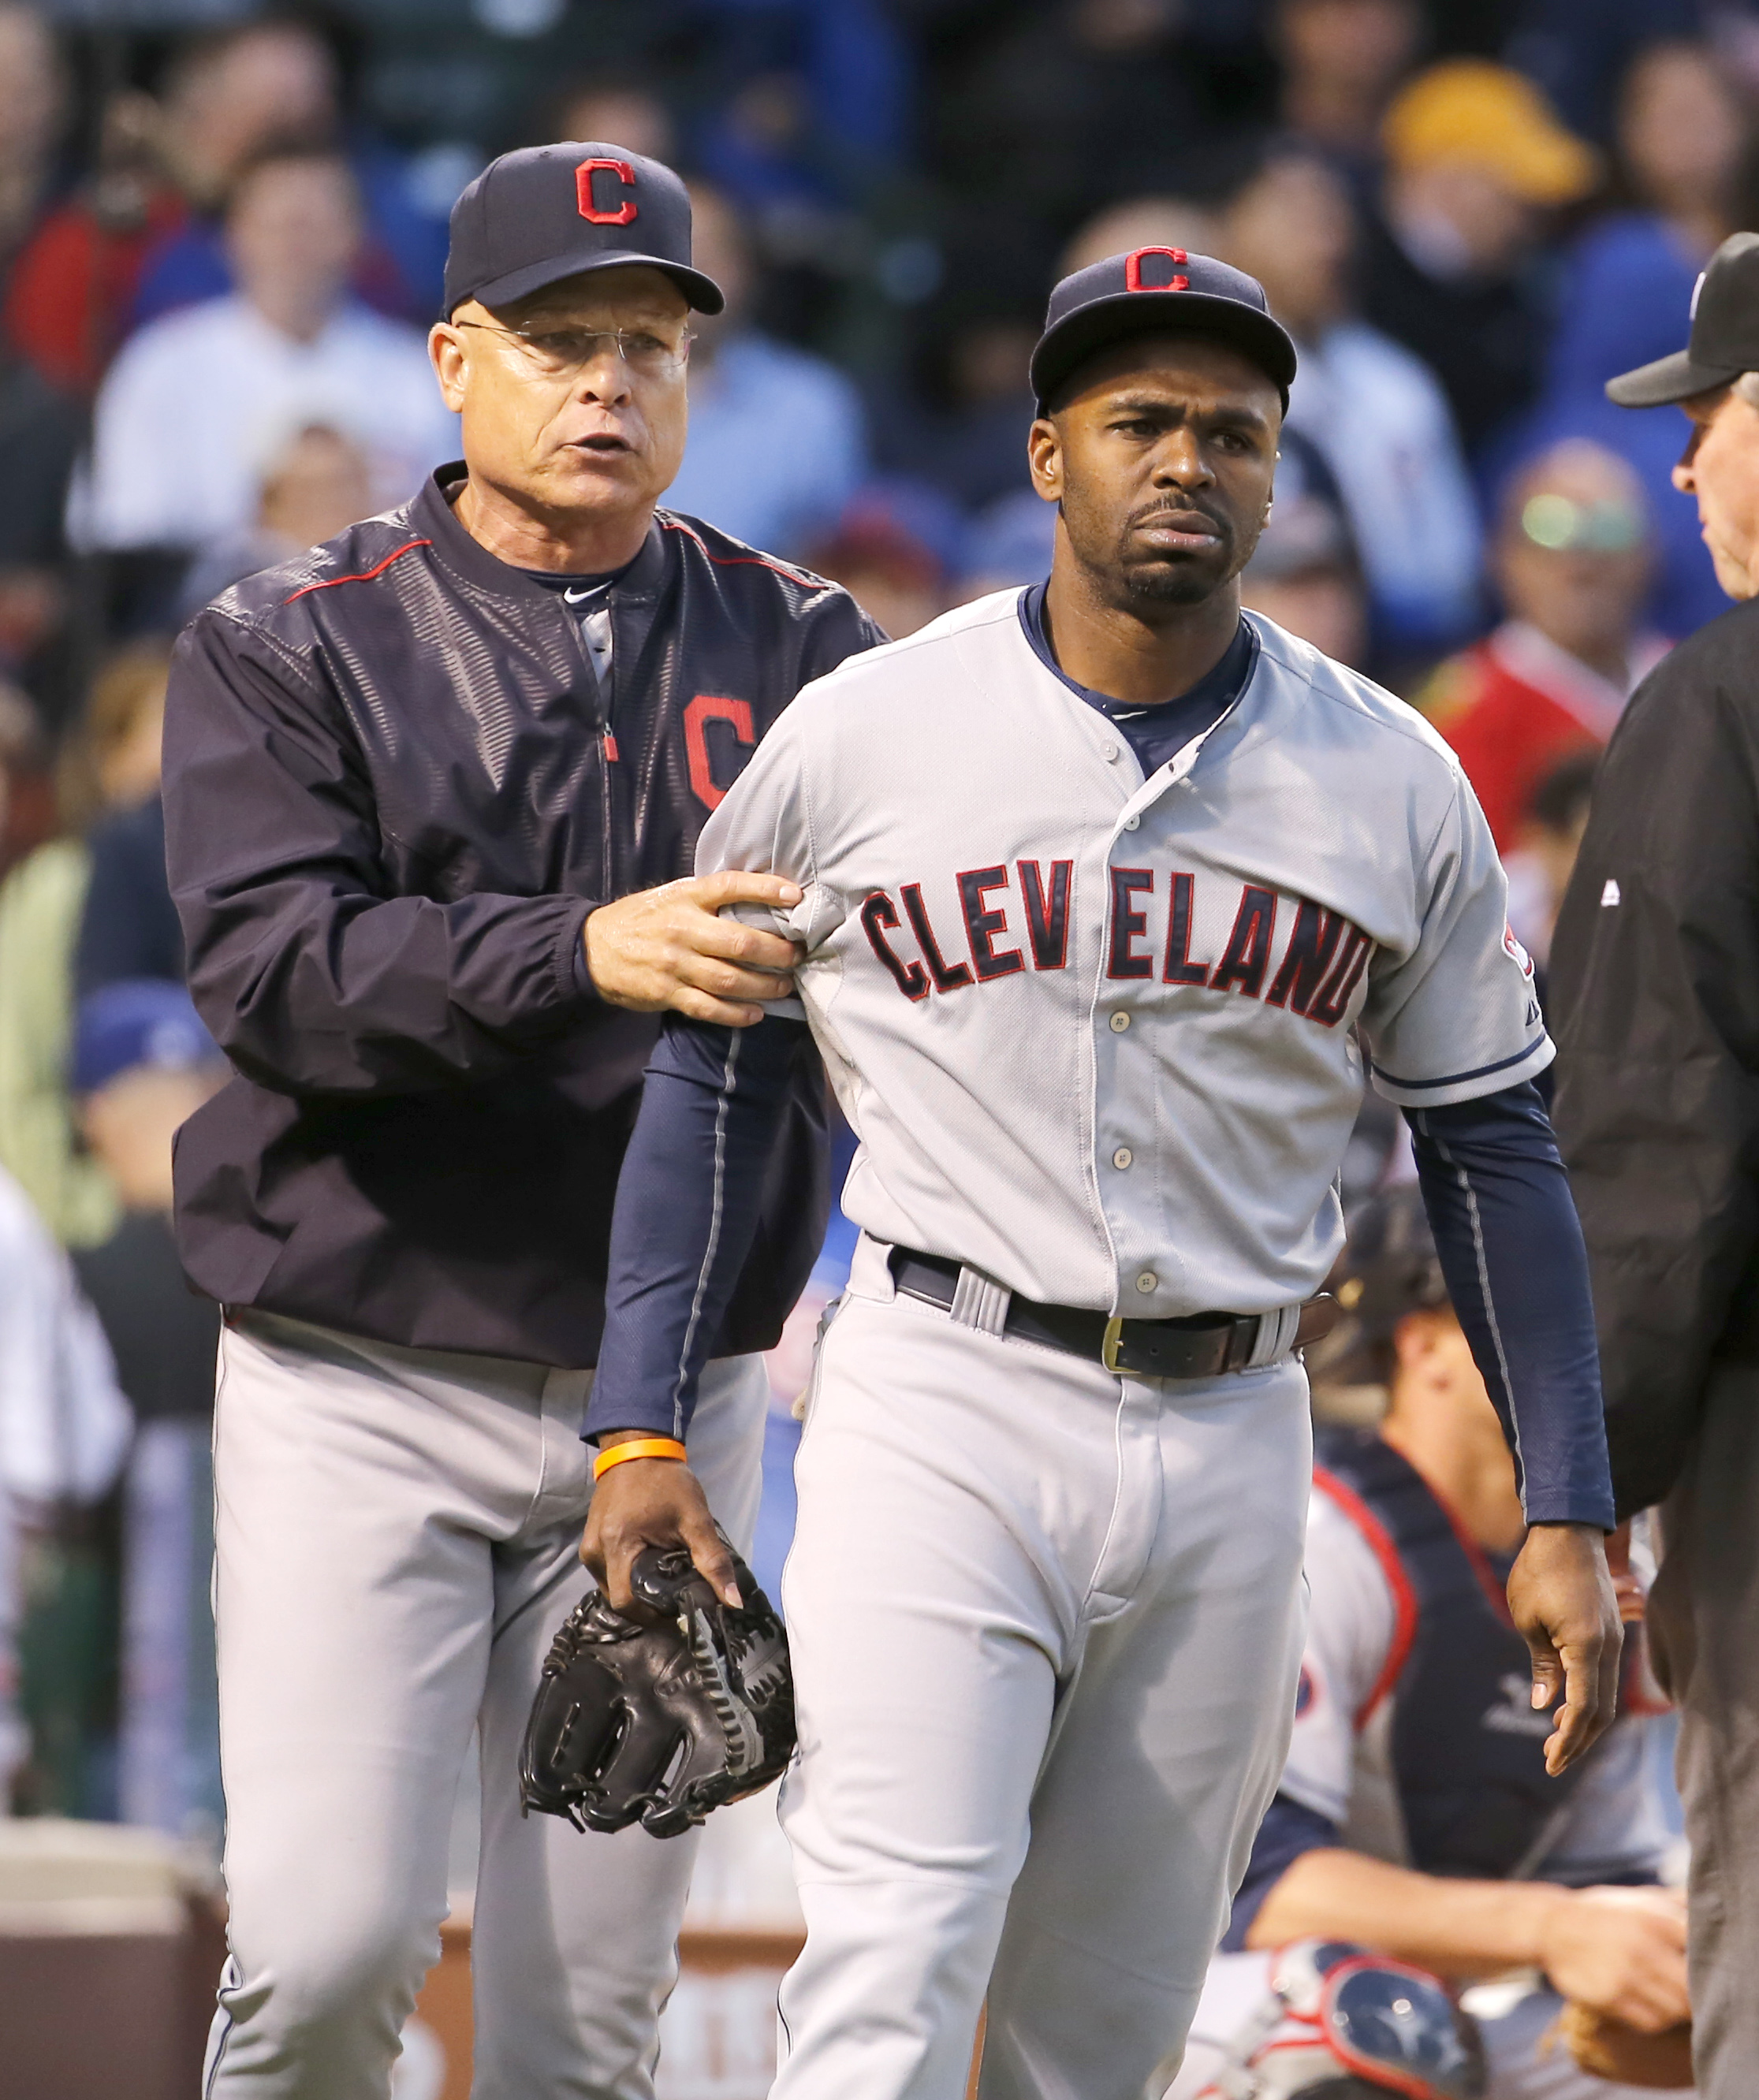 Cleveland Indians bench coach Brad Mills, left, escorts Michael Bourn off the field after Bourn was ejected from the game by home plate umpire Phil Cuzzi during the fourth inning of an interleague baseball game against the Chicago Cubs Tuesday, June 16, 2